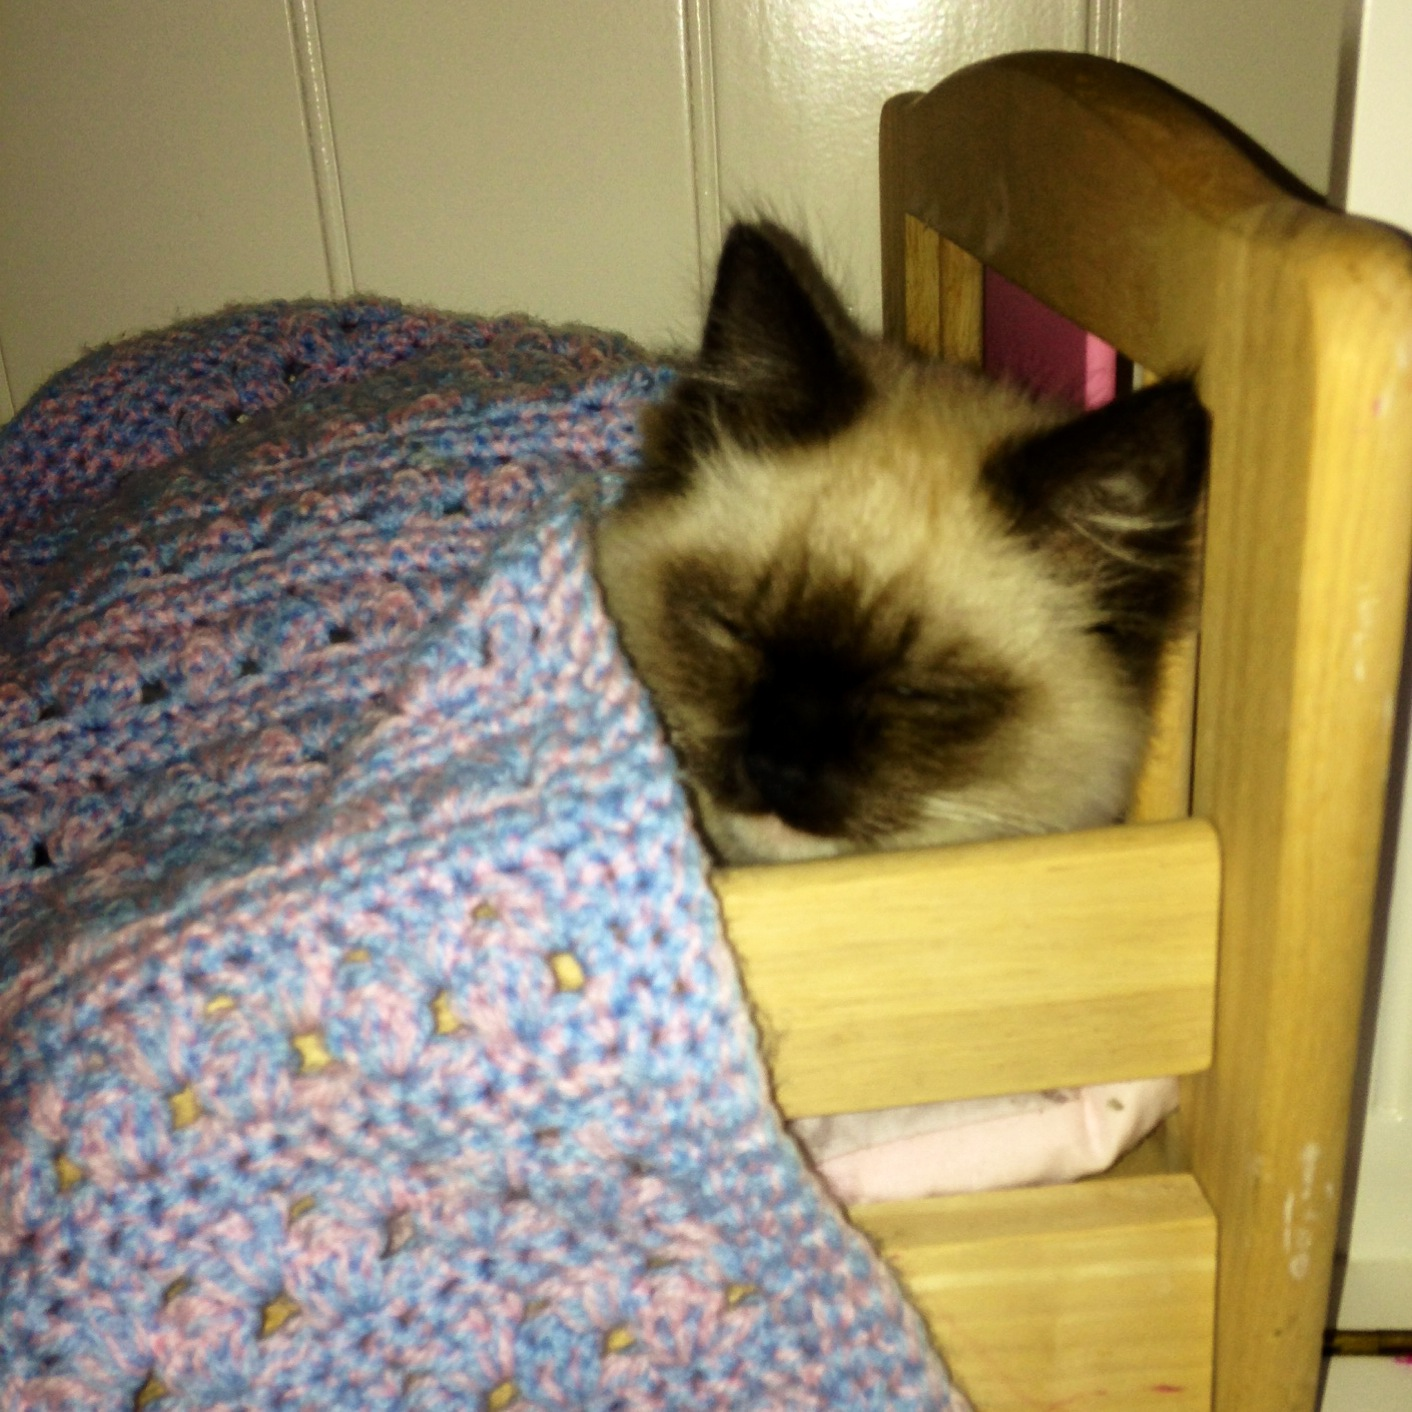 Daisy 'comfortable' in the dolls cot!